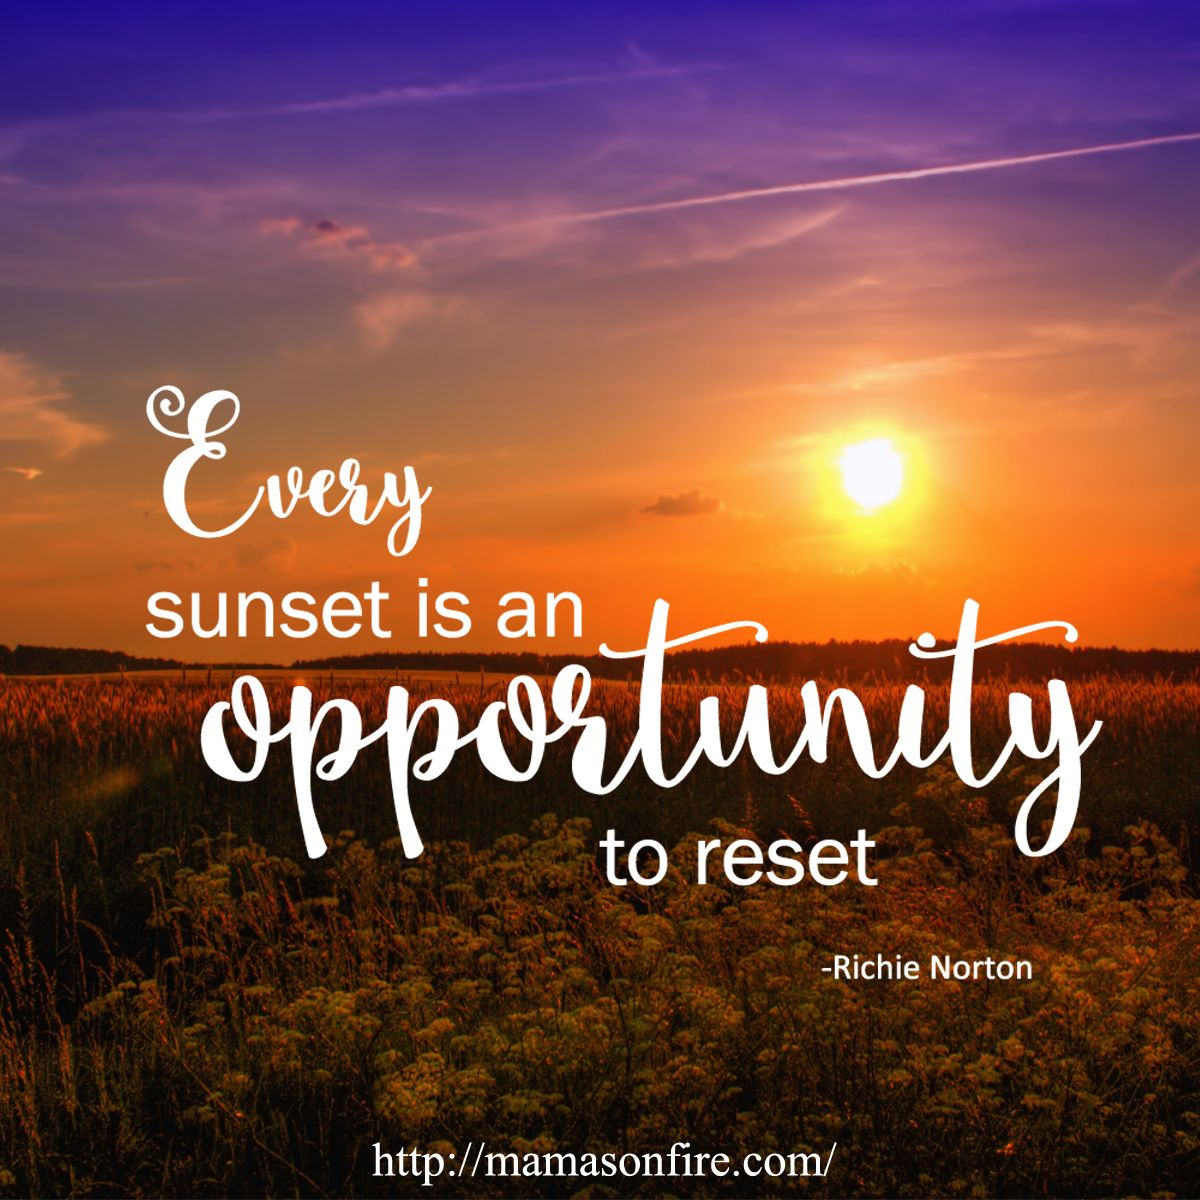 Every sunset is an opportunity to reset. Richie Norton